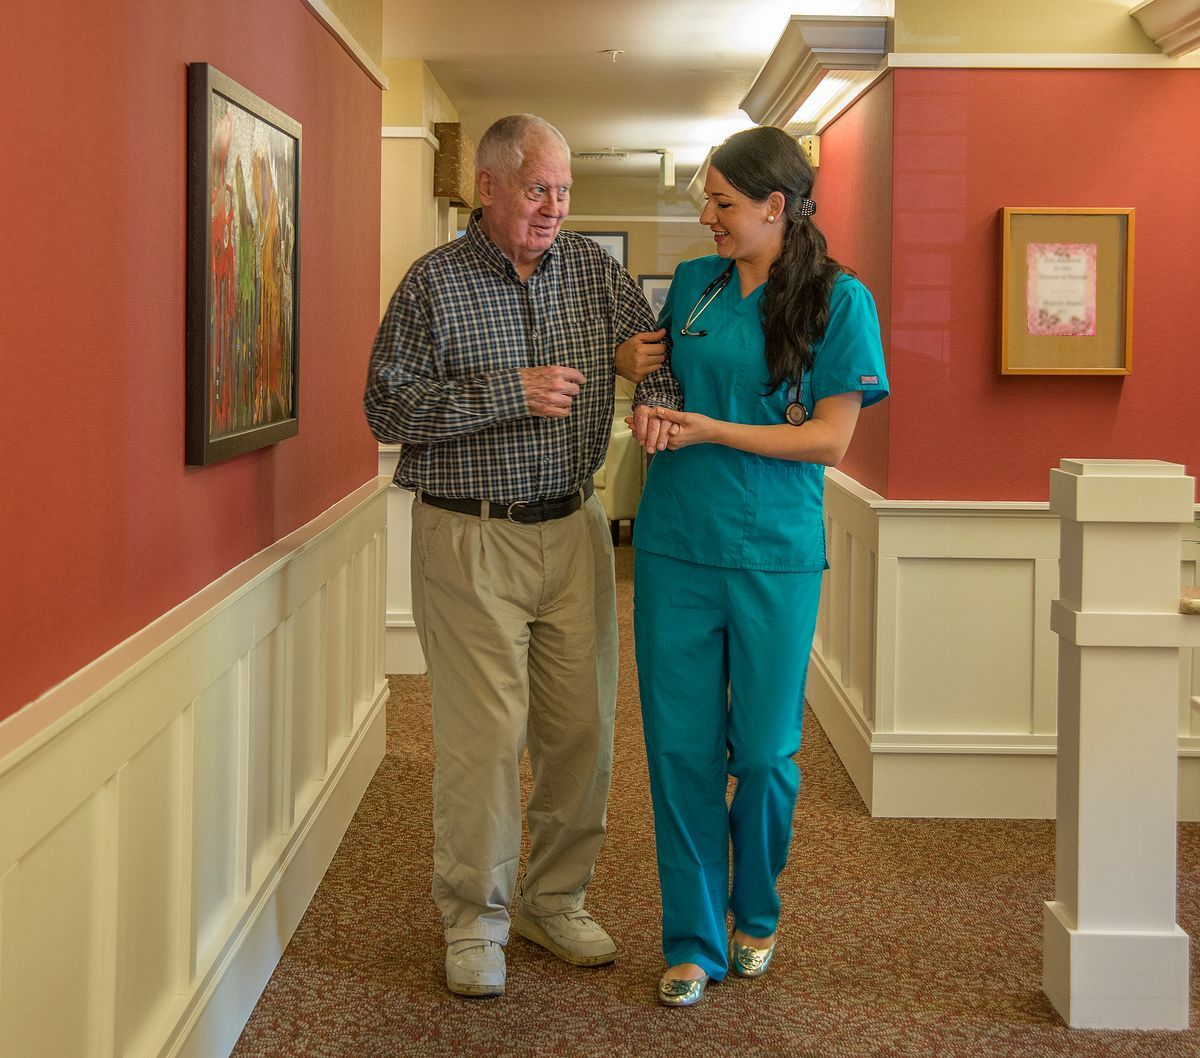 Rosewood Courte resident takes a walk around the facility with his nurse.